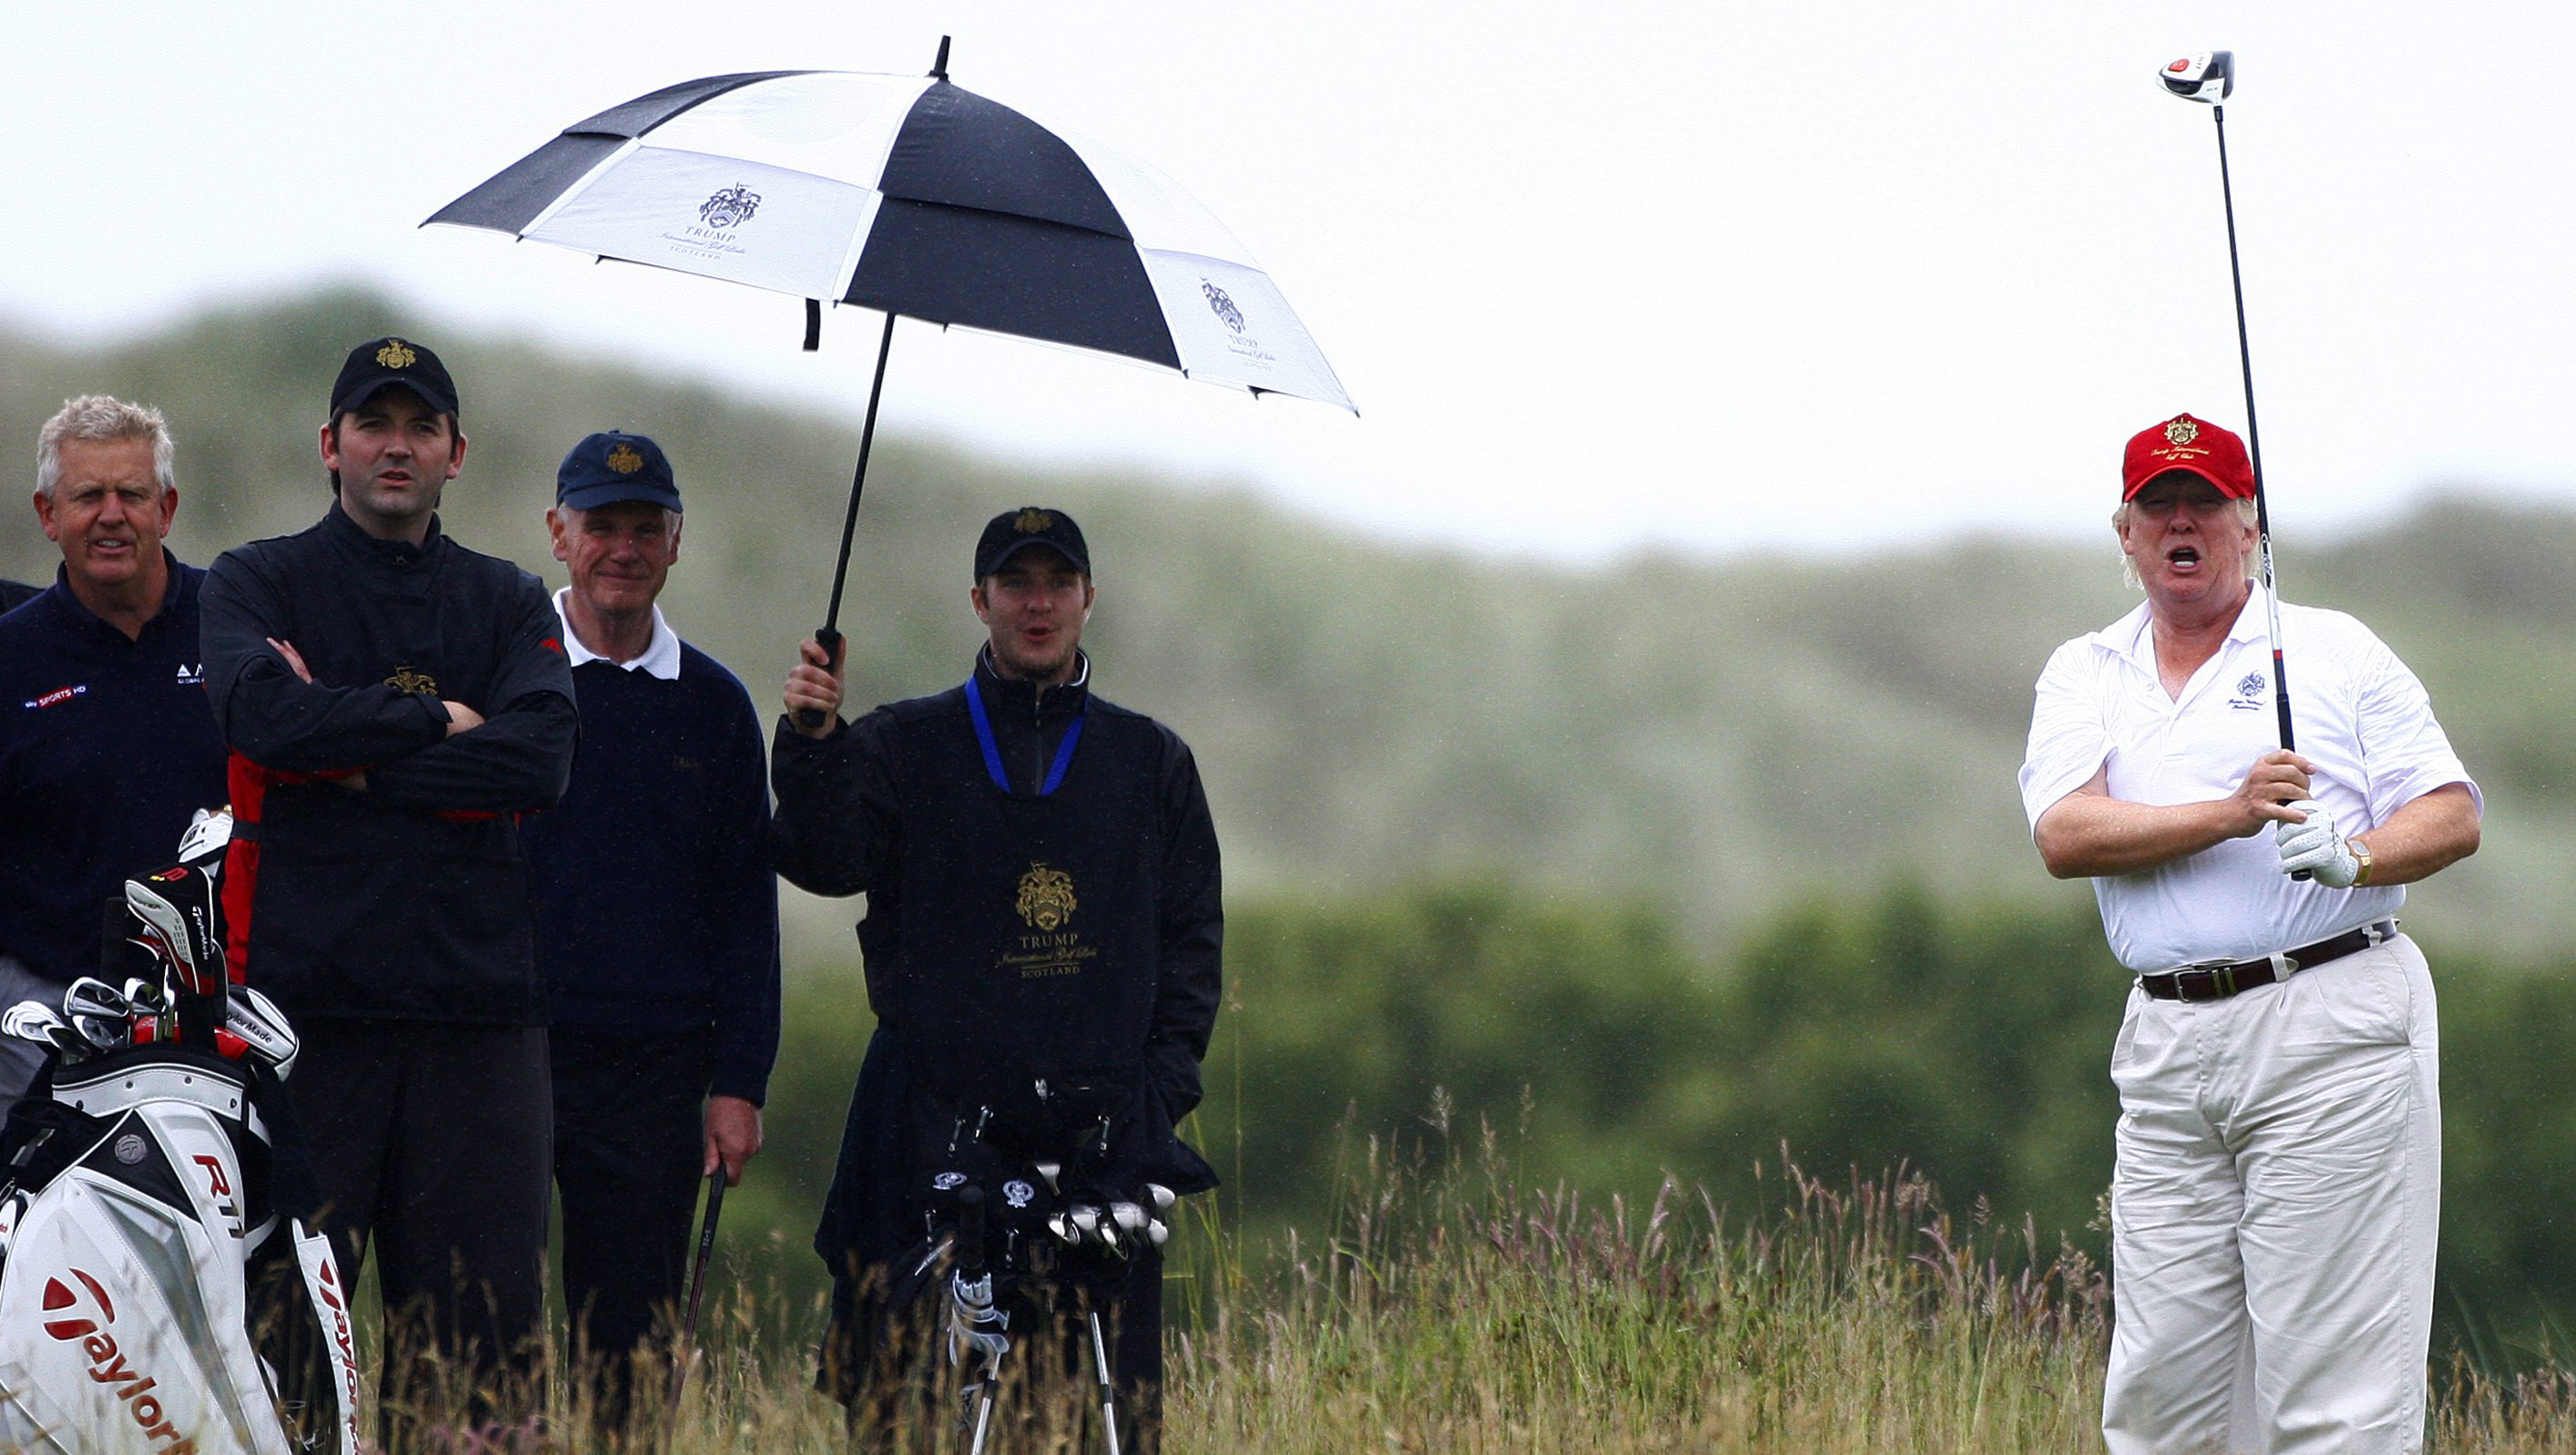 Real estate magnate Trump plays golf during the opening of his Trump International Golf Links golf course near Aberdeen, northeast Scotland